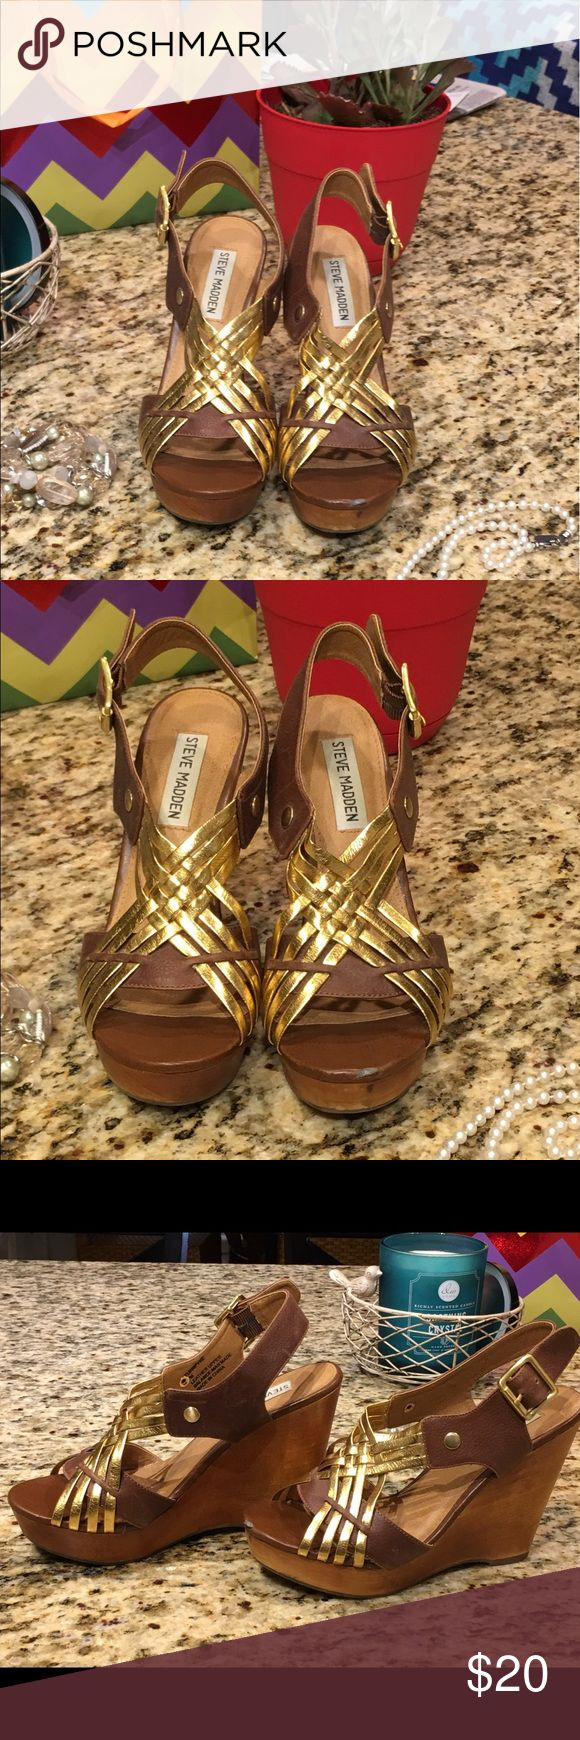 """Steve Madden wedge heels,  7M, leather uppers Steve Madden wedge shoes, size 7M, leather upper.  Brown with gold straps. Small flaw on left shoe front.  Price reflects flaw, still lots of wear on a great shoe.  4 1/2"""" heel height. Steve Madden Shoes Wedges"""